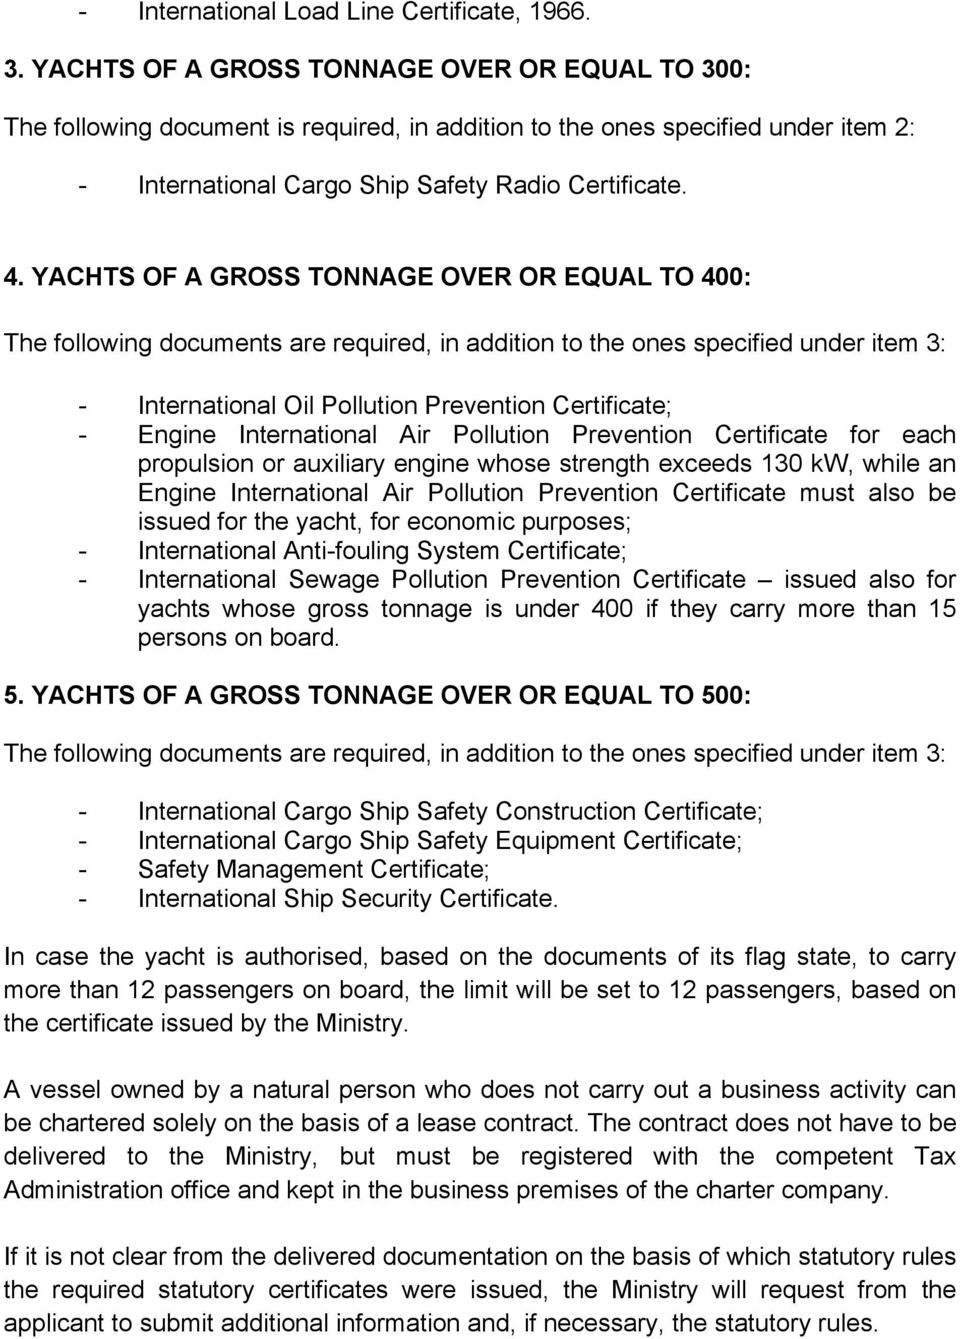 YACHTS OF A GROSS TONNAGE OVER OR EQUAL TO 400: The following documents are required, in addition to the ones specified under item 3: - International Oil Pollution Prevention Certificate; - Engine